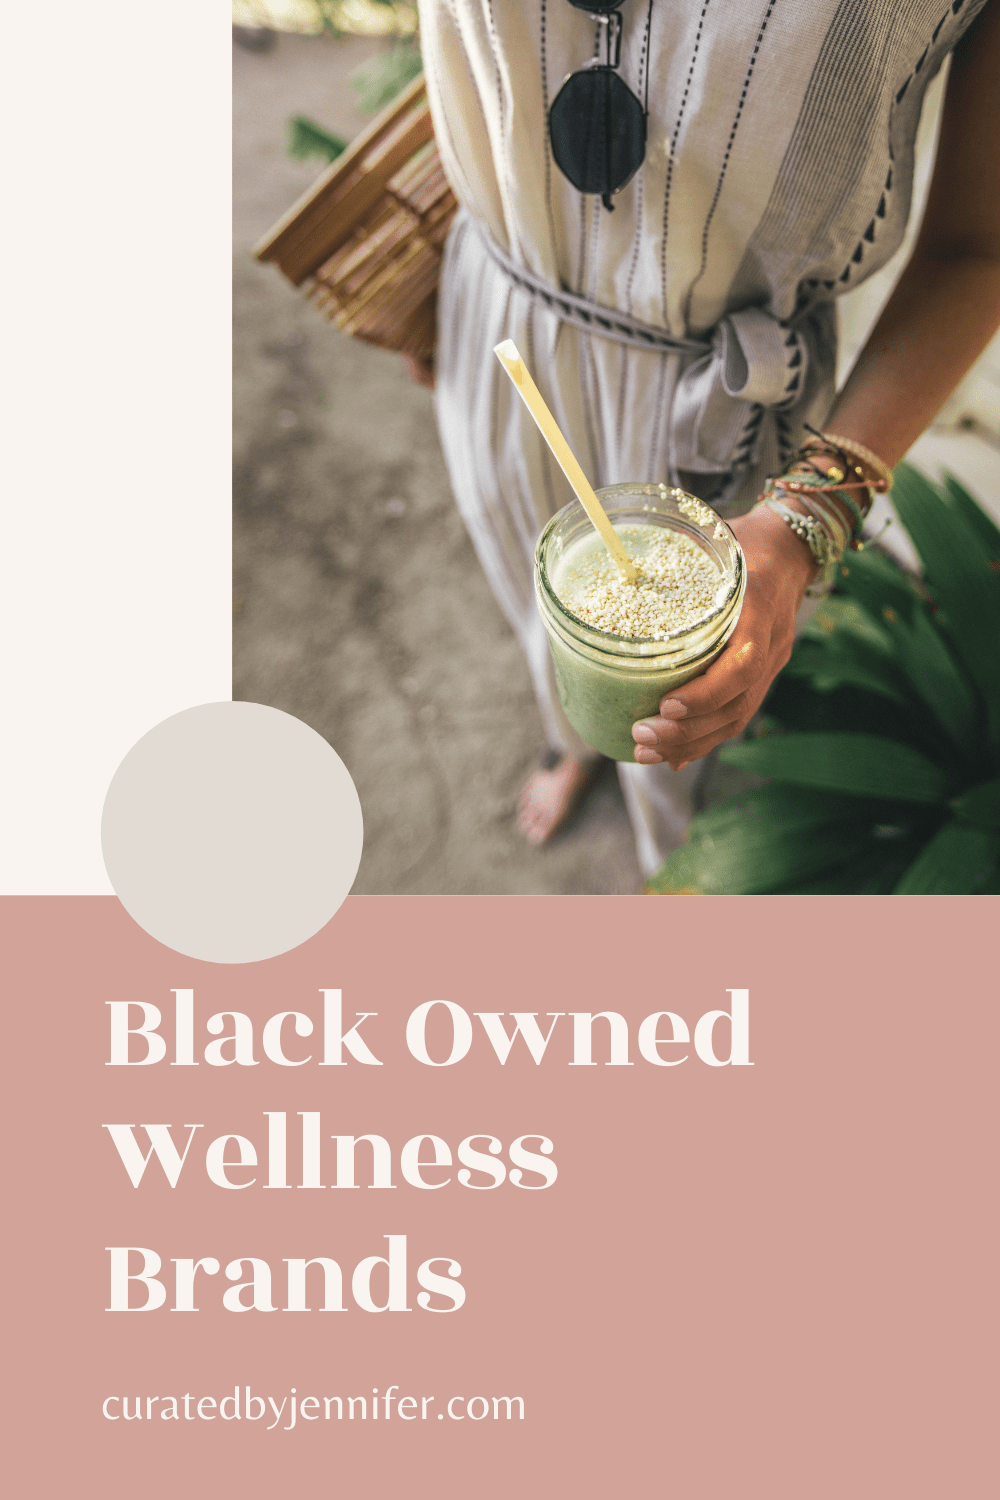 Black Owned Wellness Brands